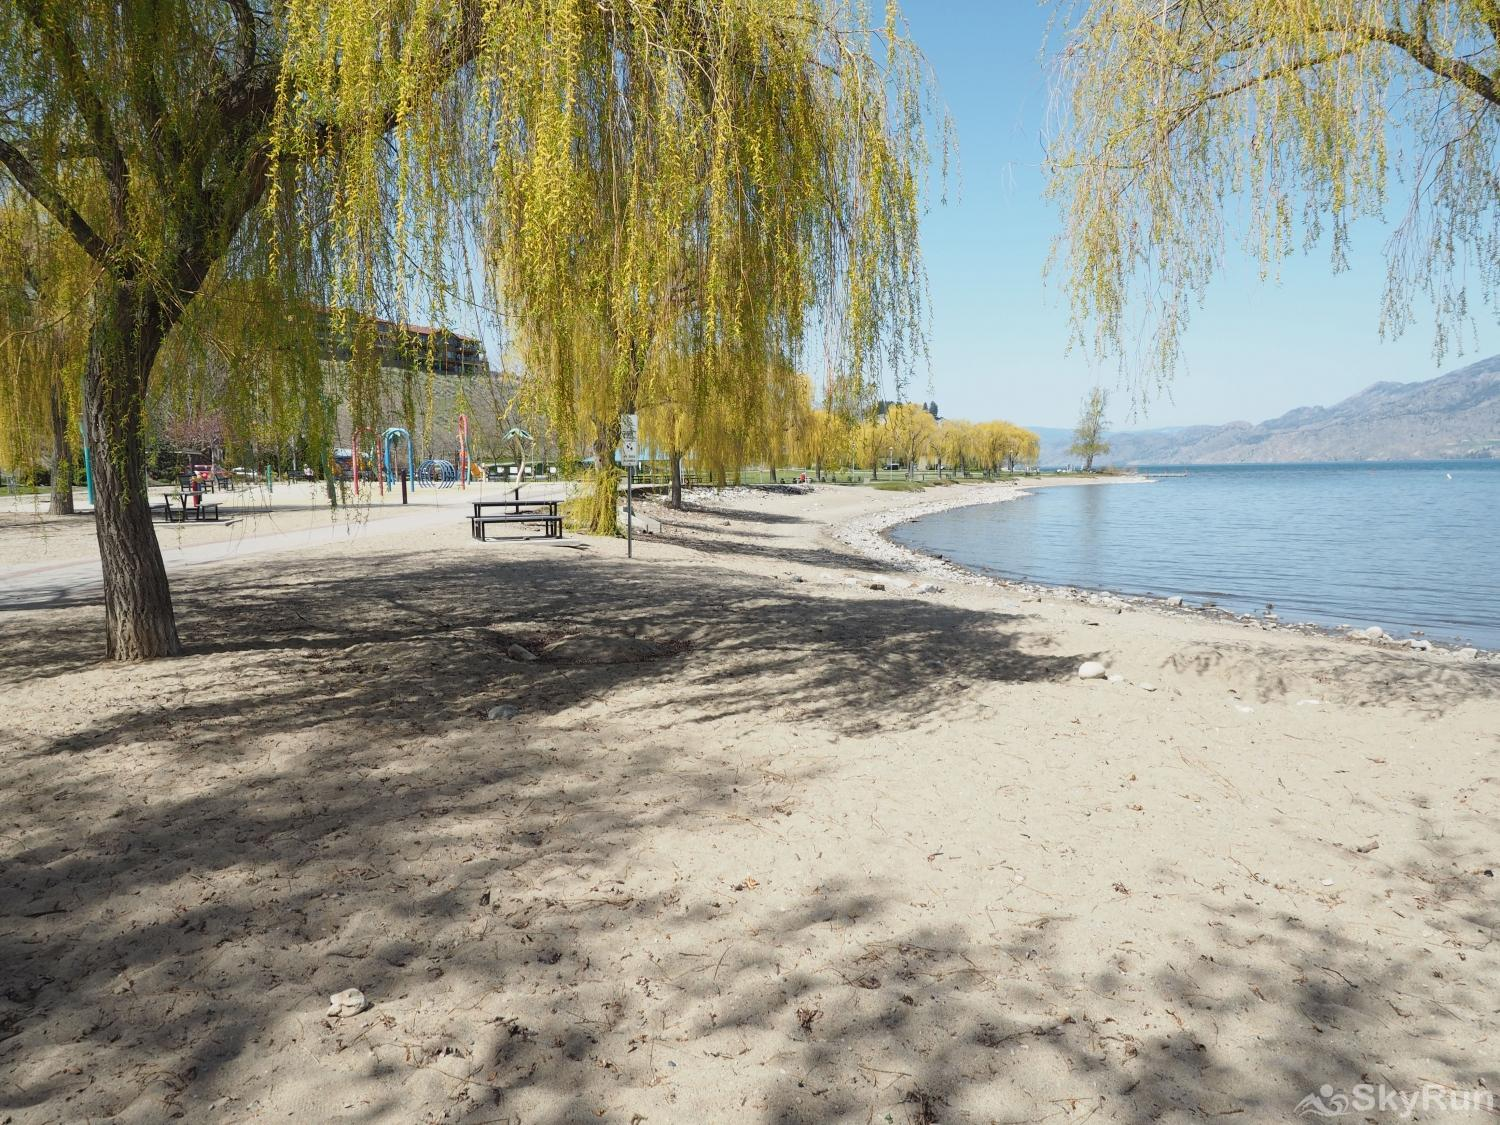 Old Summerland 1 bedroom suite peach orchard park has a water park for the kids and a dog beach for your furry friends